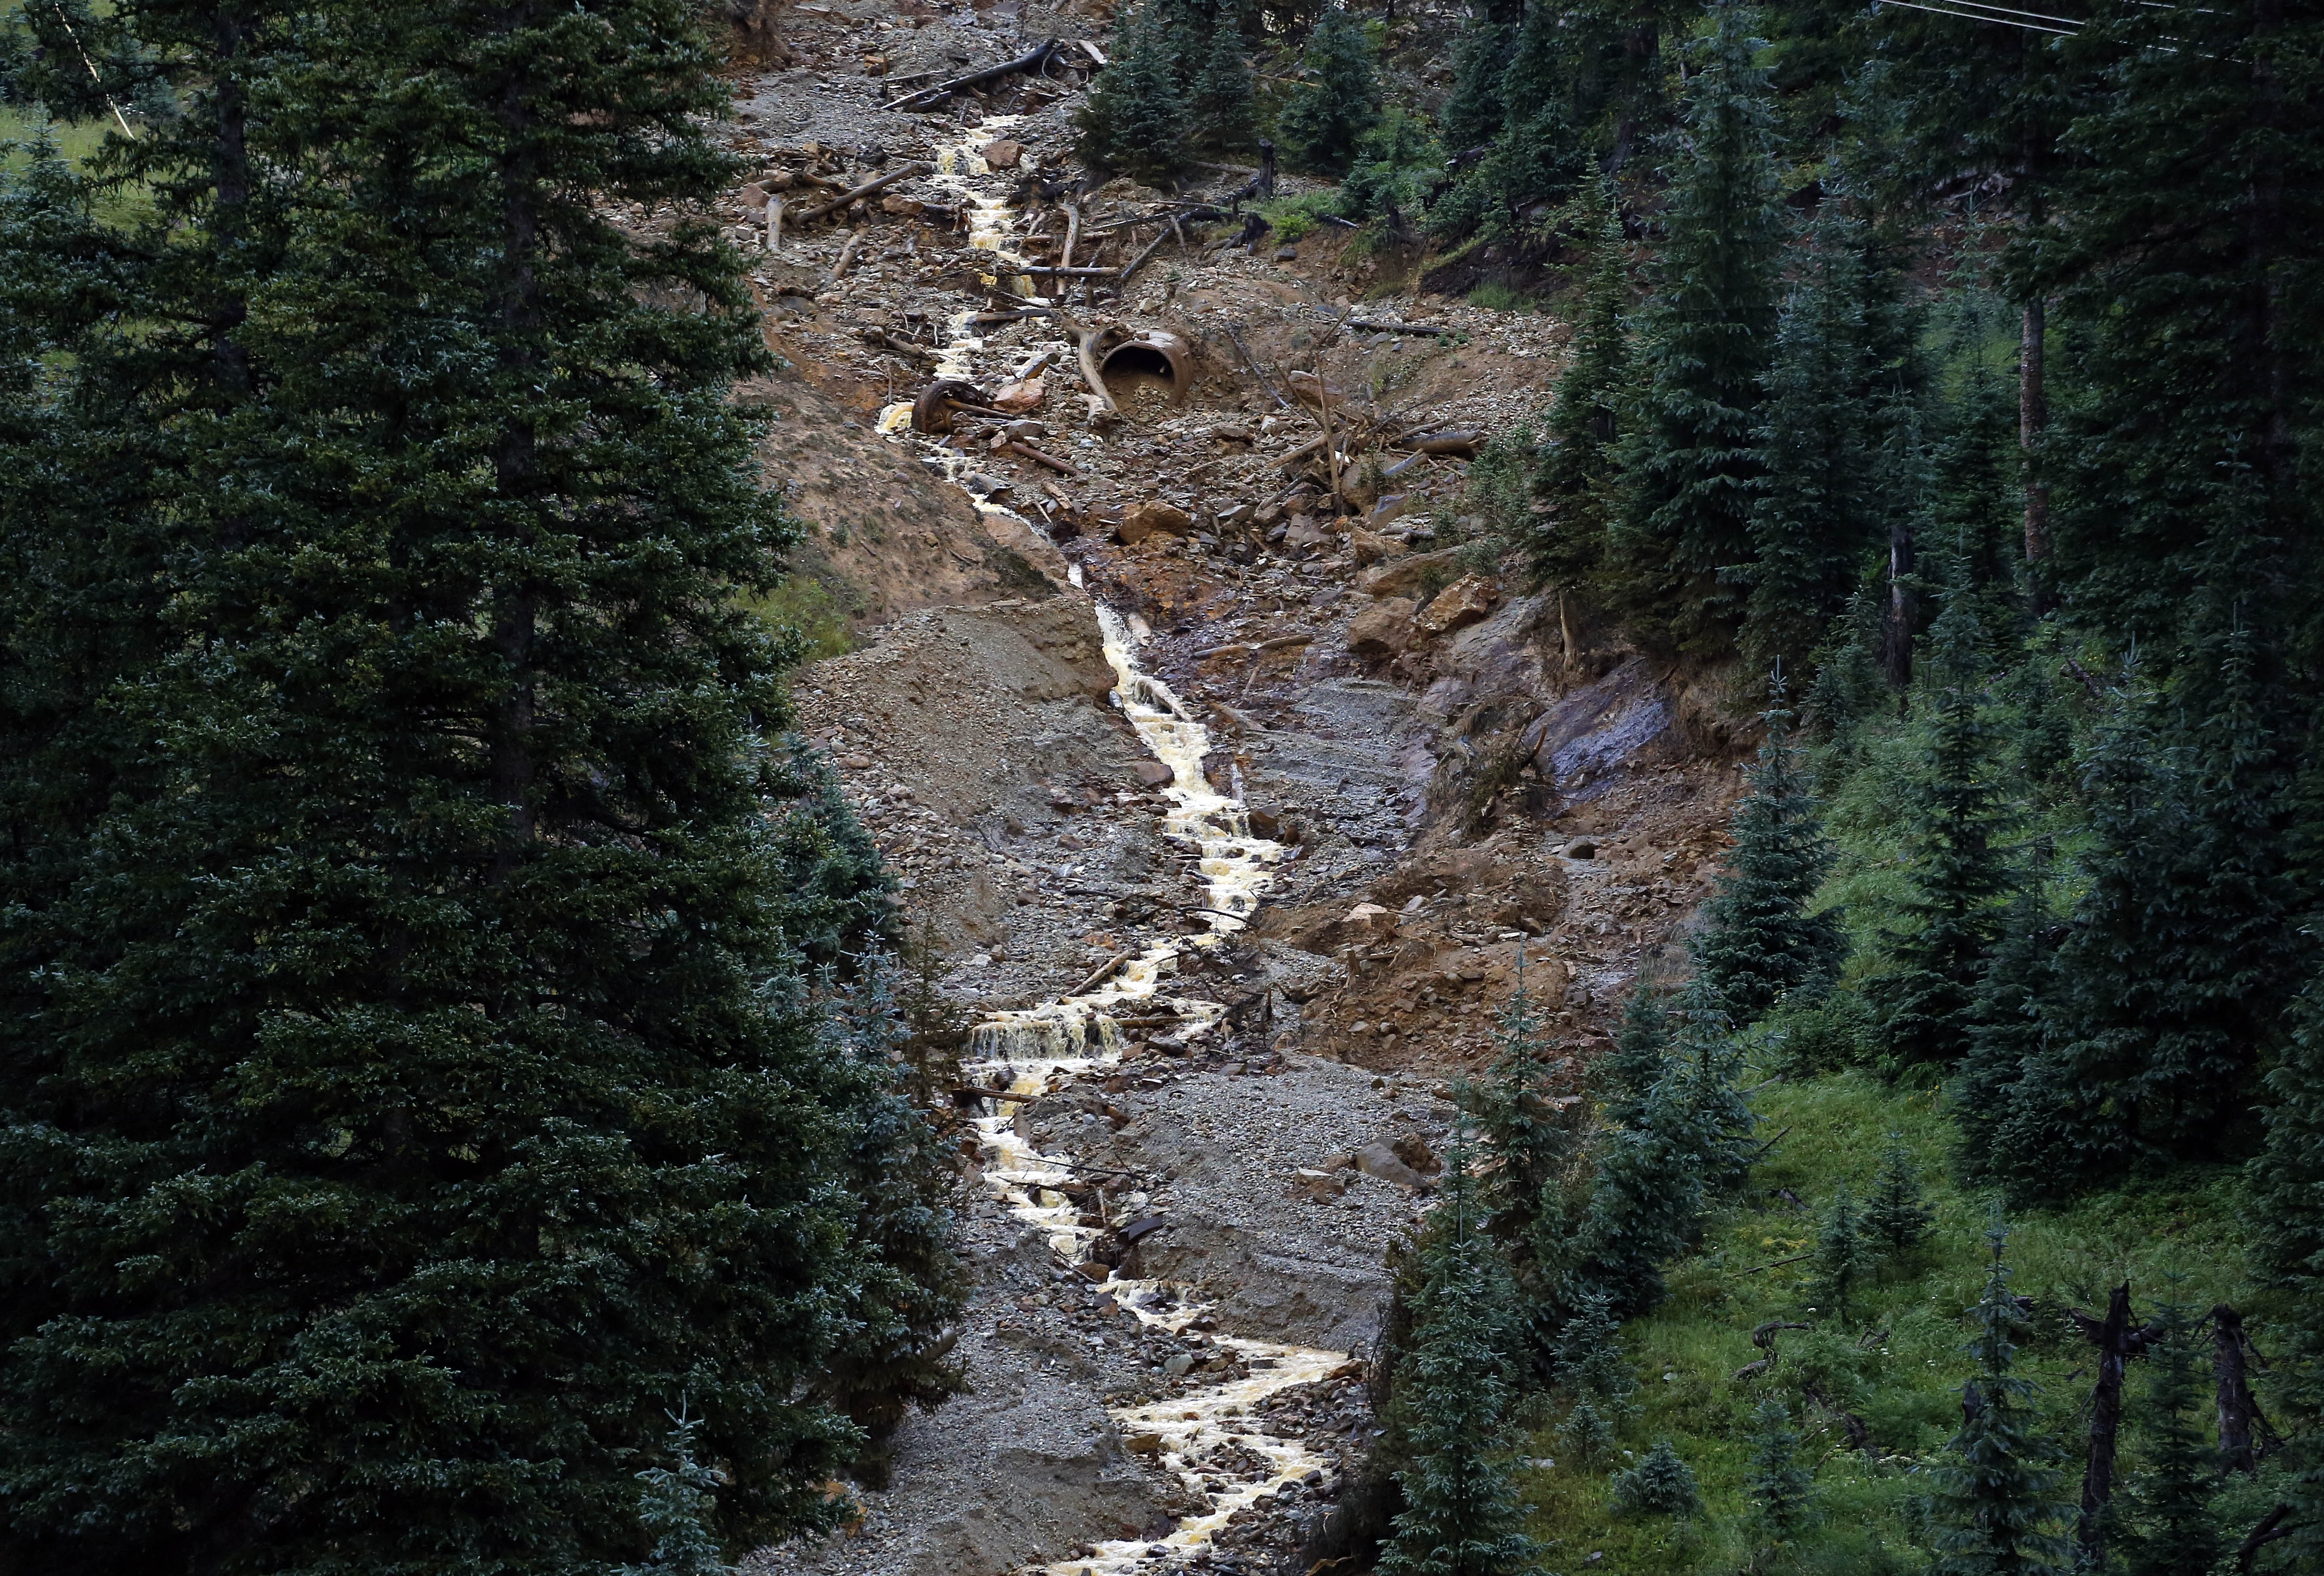 Photo: Gold King Mine Polluted Water Aug. 12, 2015 (AP)